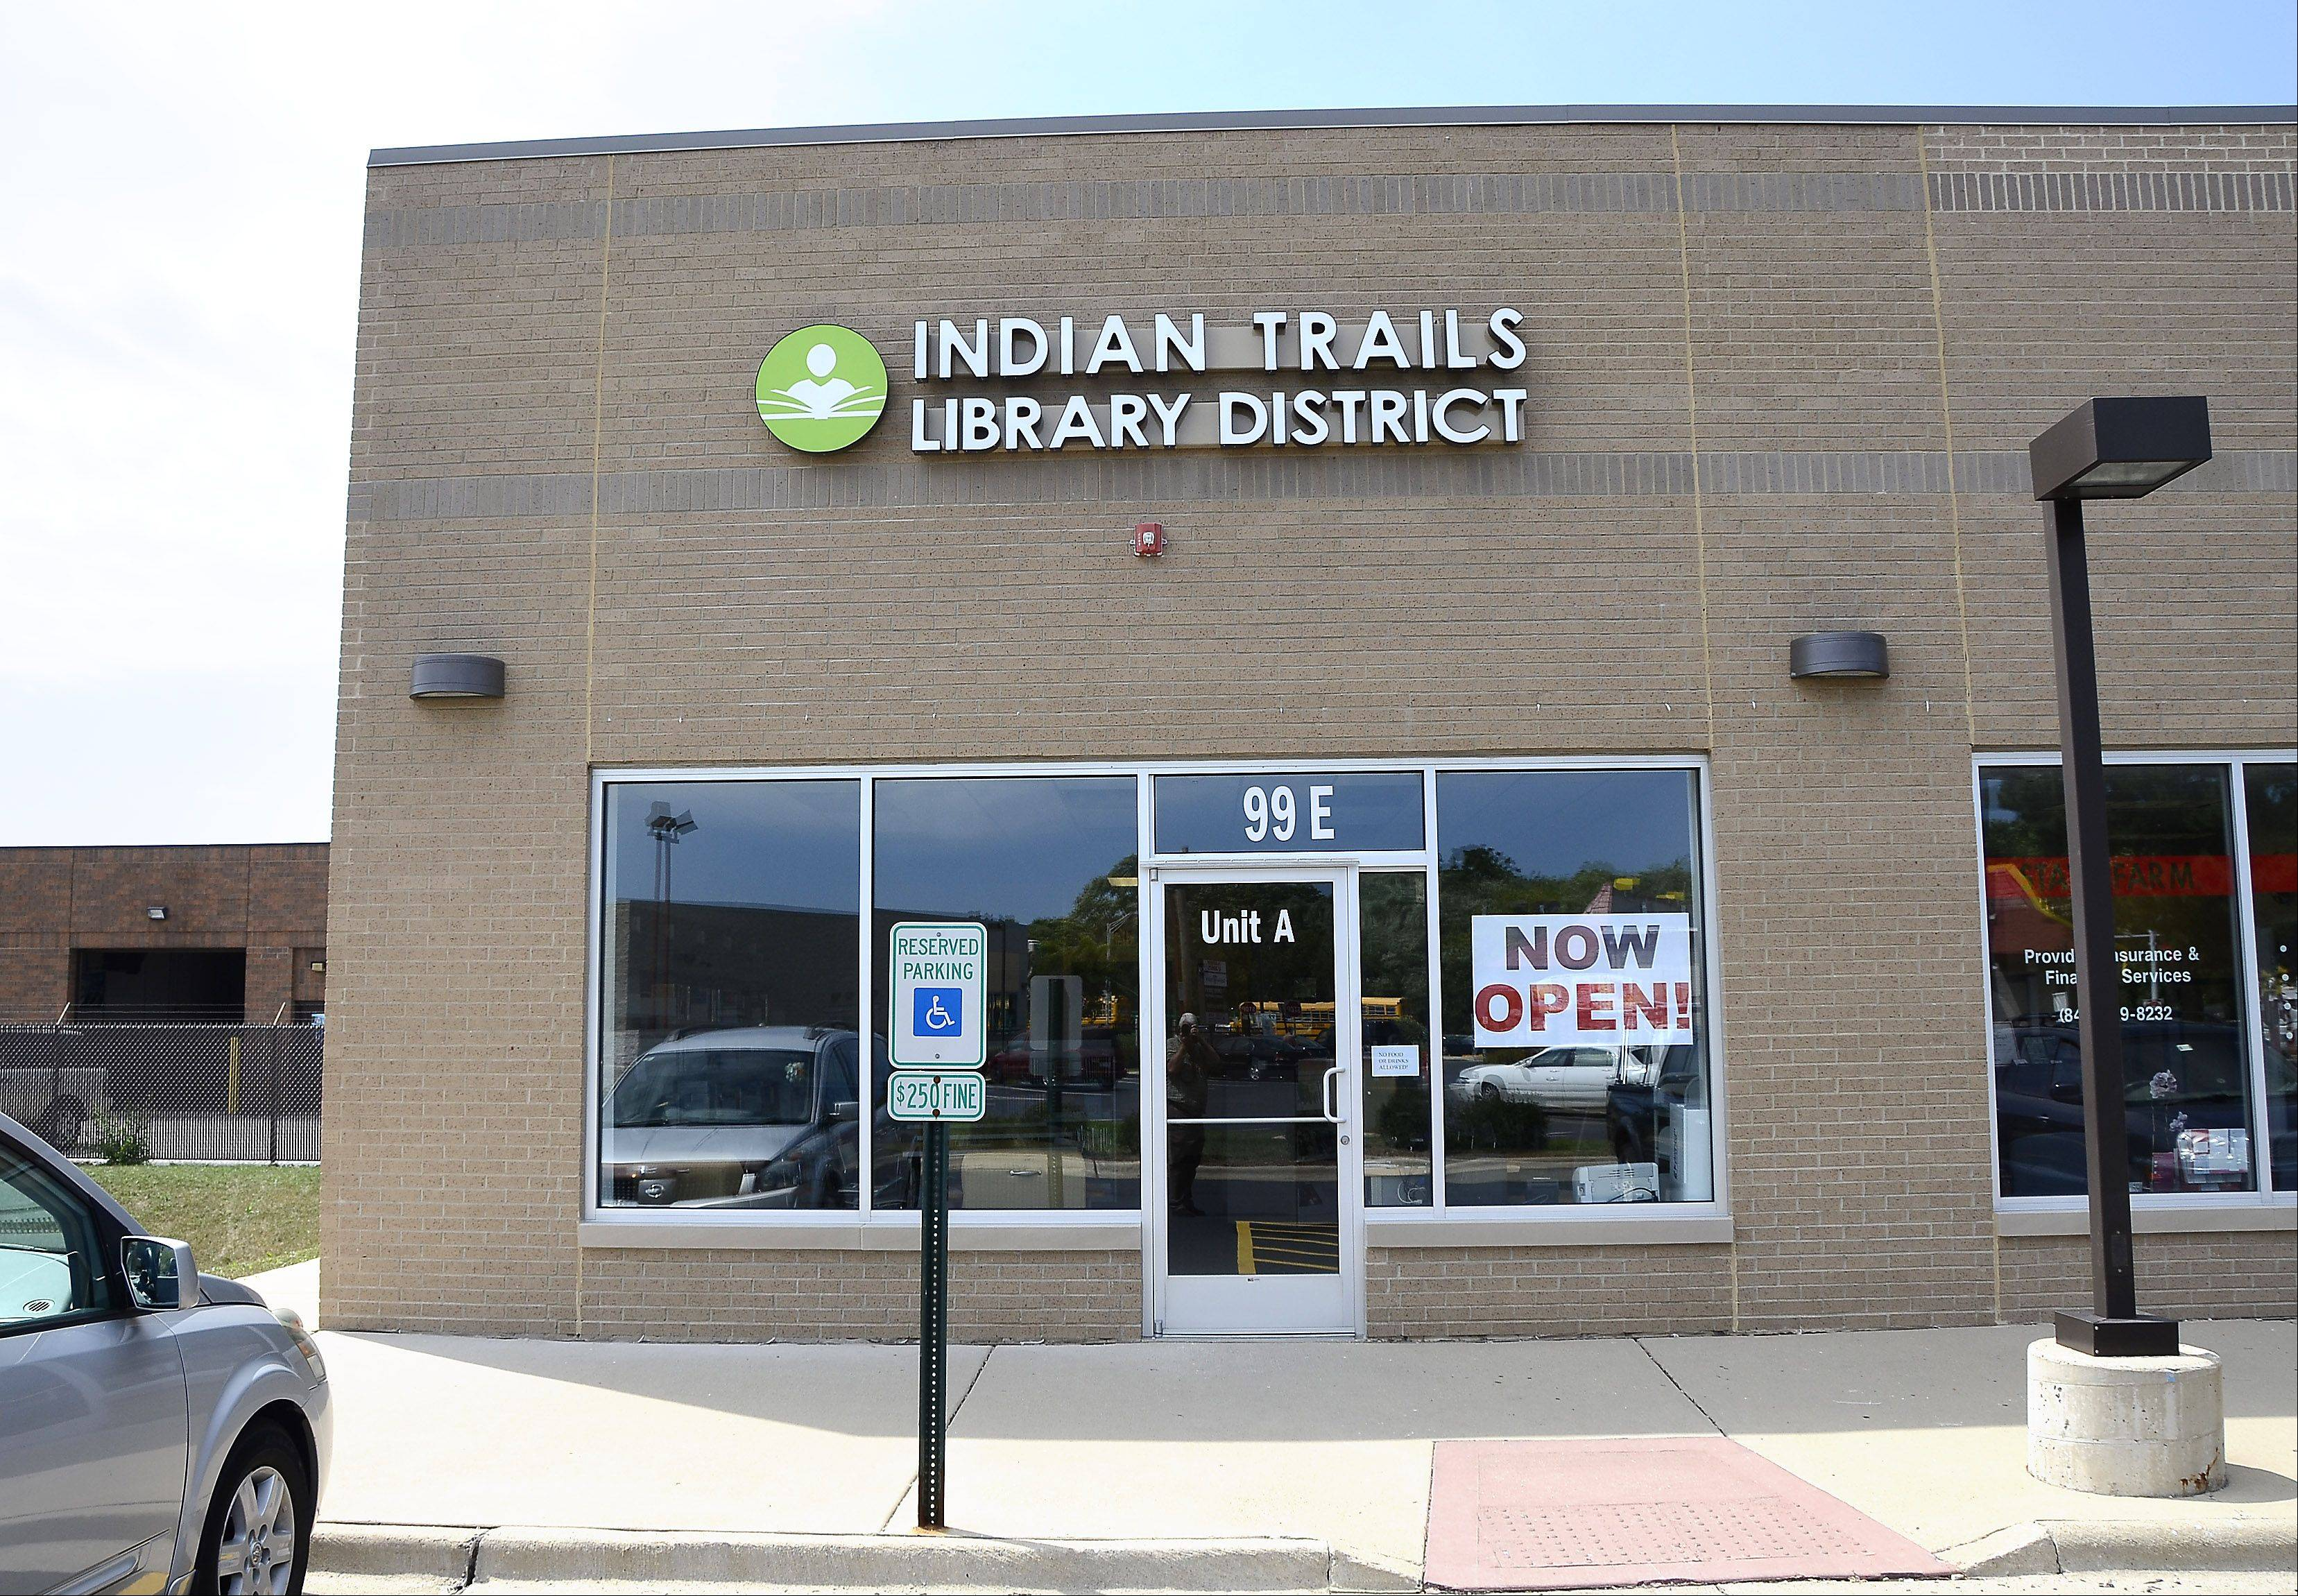 The new branch of the Indian Trails Public Library has opened at 99 E. Palatine Road to replace the recently closed location in Prospect Heights. It is located behind the McDonald's restaurant north of the Palatine Road express lanes.